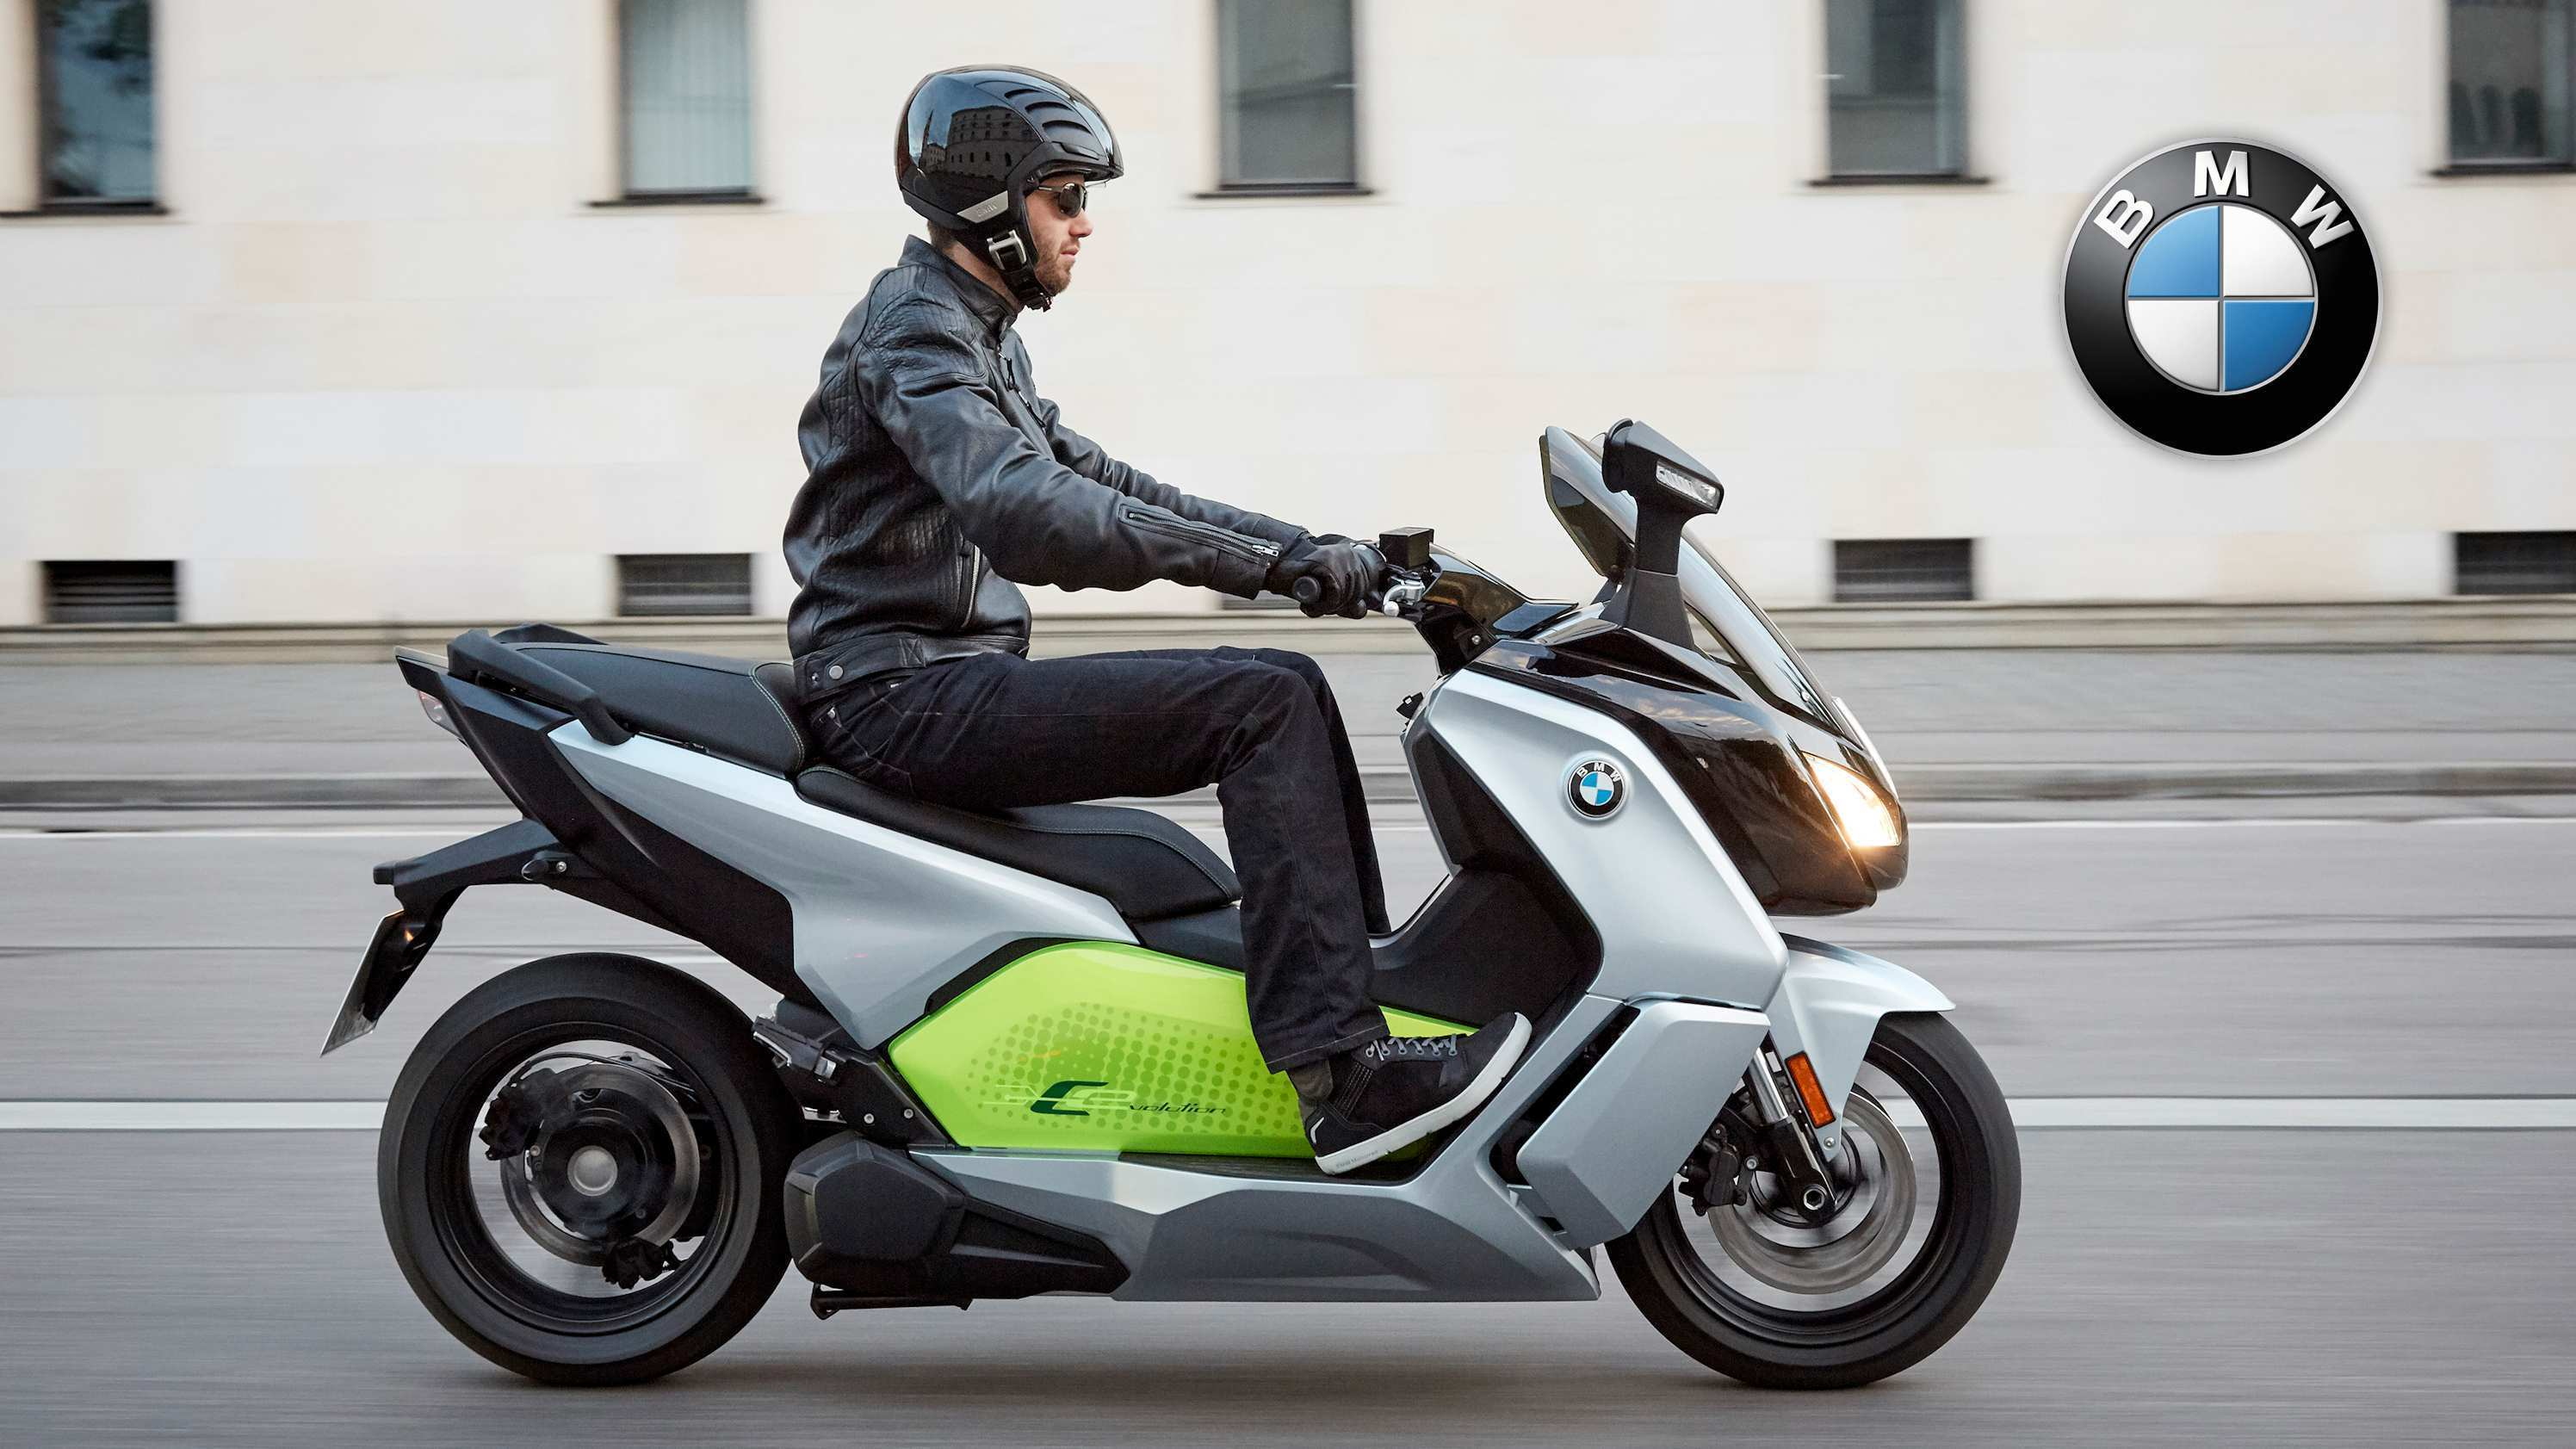 20 Concept of Bmw C 2019 Images with Bmw C 2019